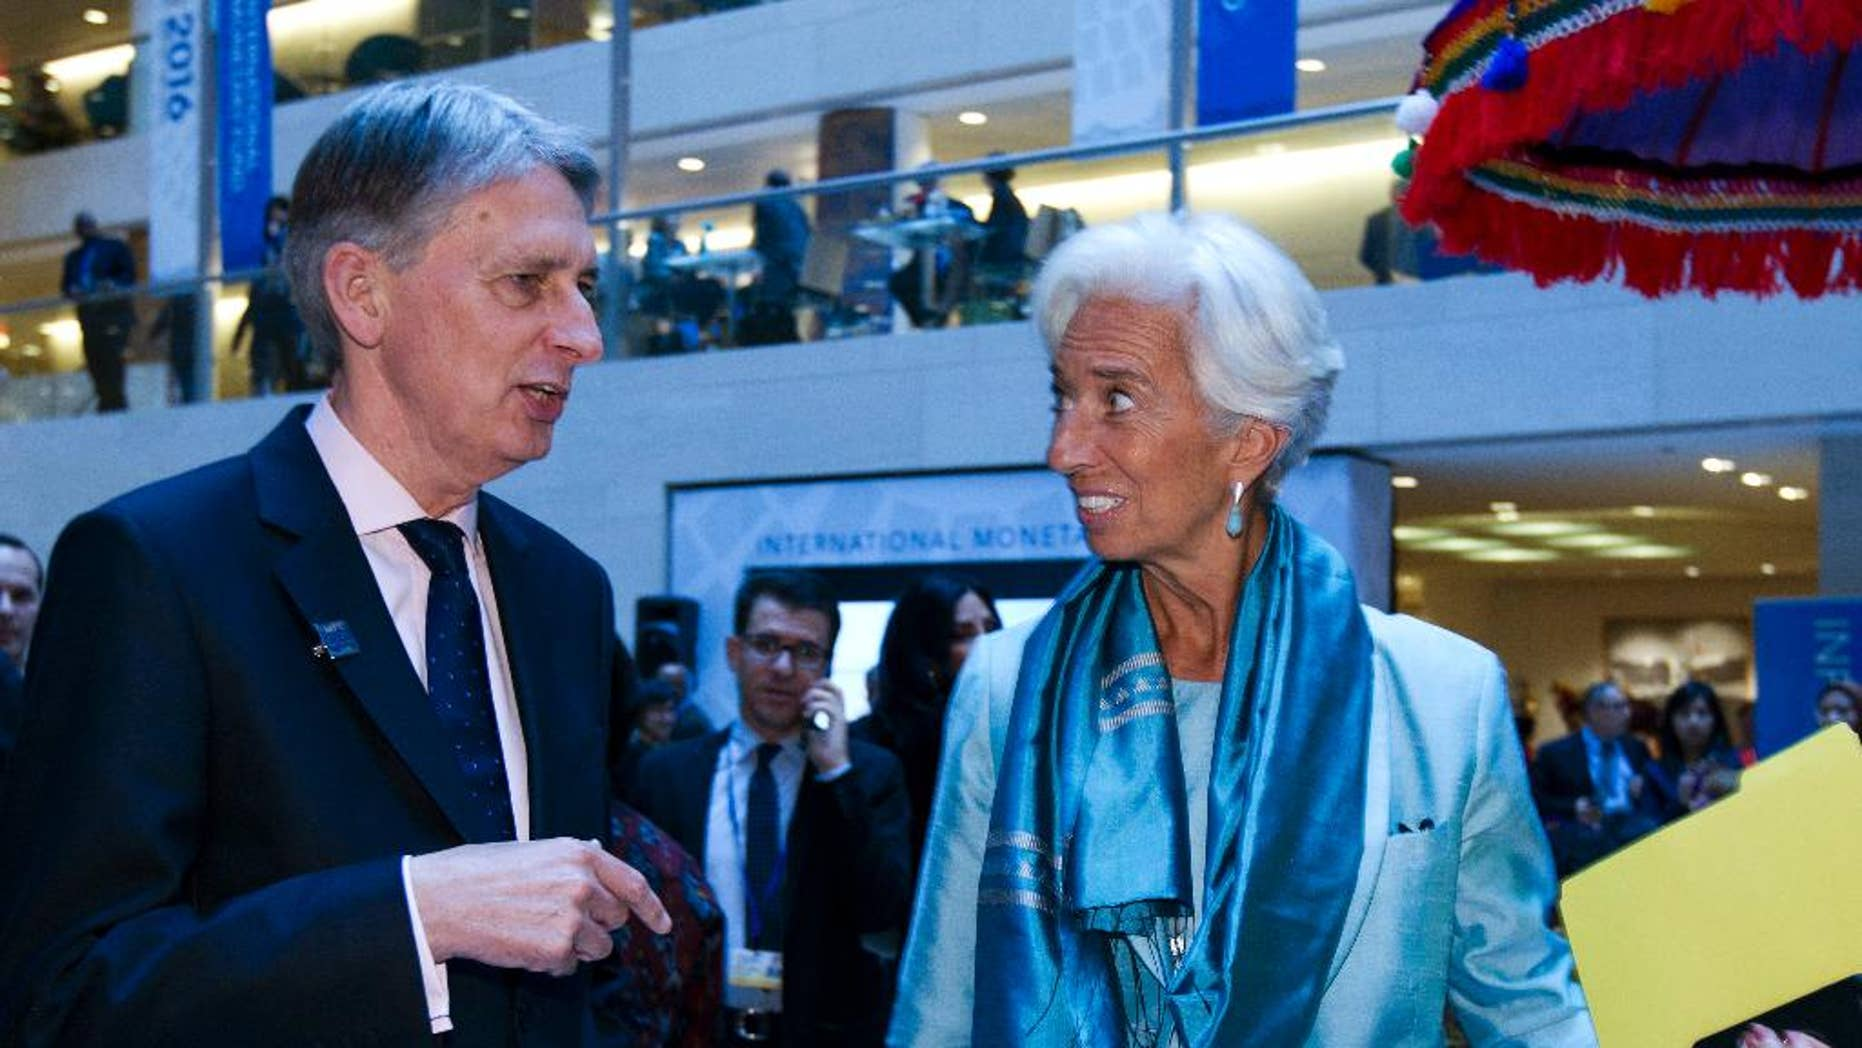 International Monetary Fund (IMF) Managing Director Christine Lagarde speaks with Chancellor of the Exchequer Philip Hammond after a news conference at World Bank/IMF Annual Meetings at IMF headquarters in Washington, Saturday, Oct. 8, 2016. ( AP Photo/Jose Luis Magana)